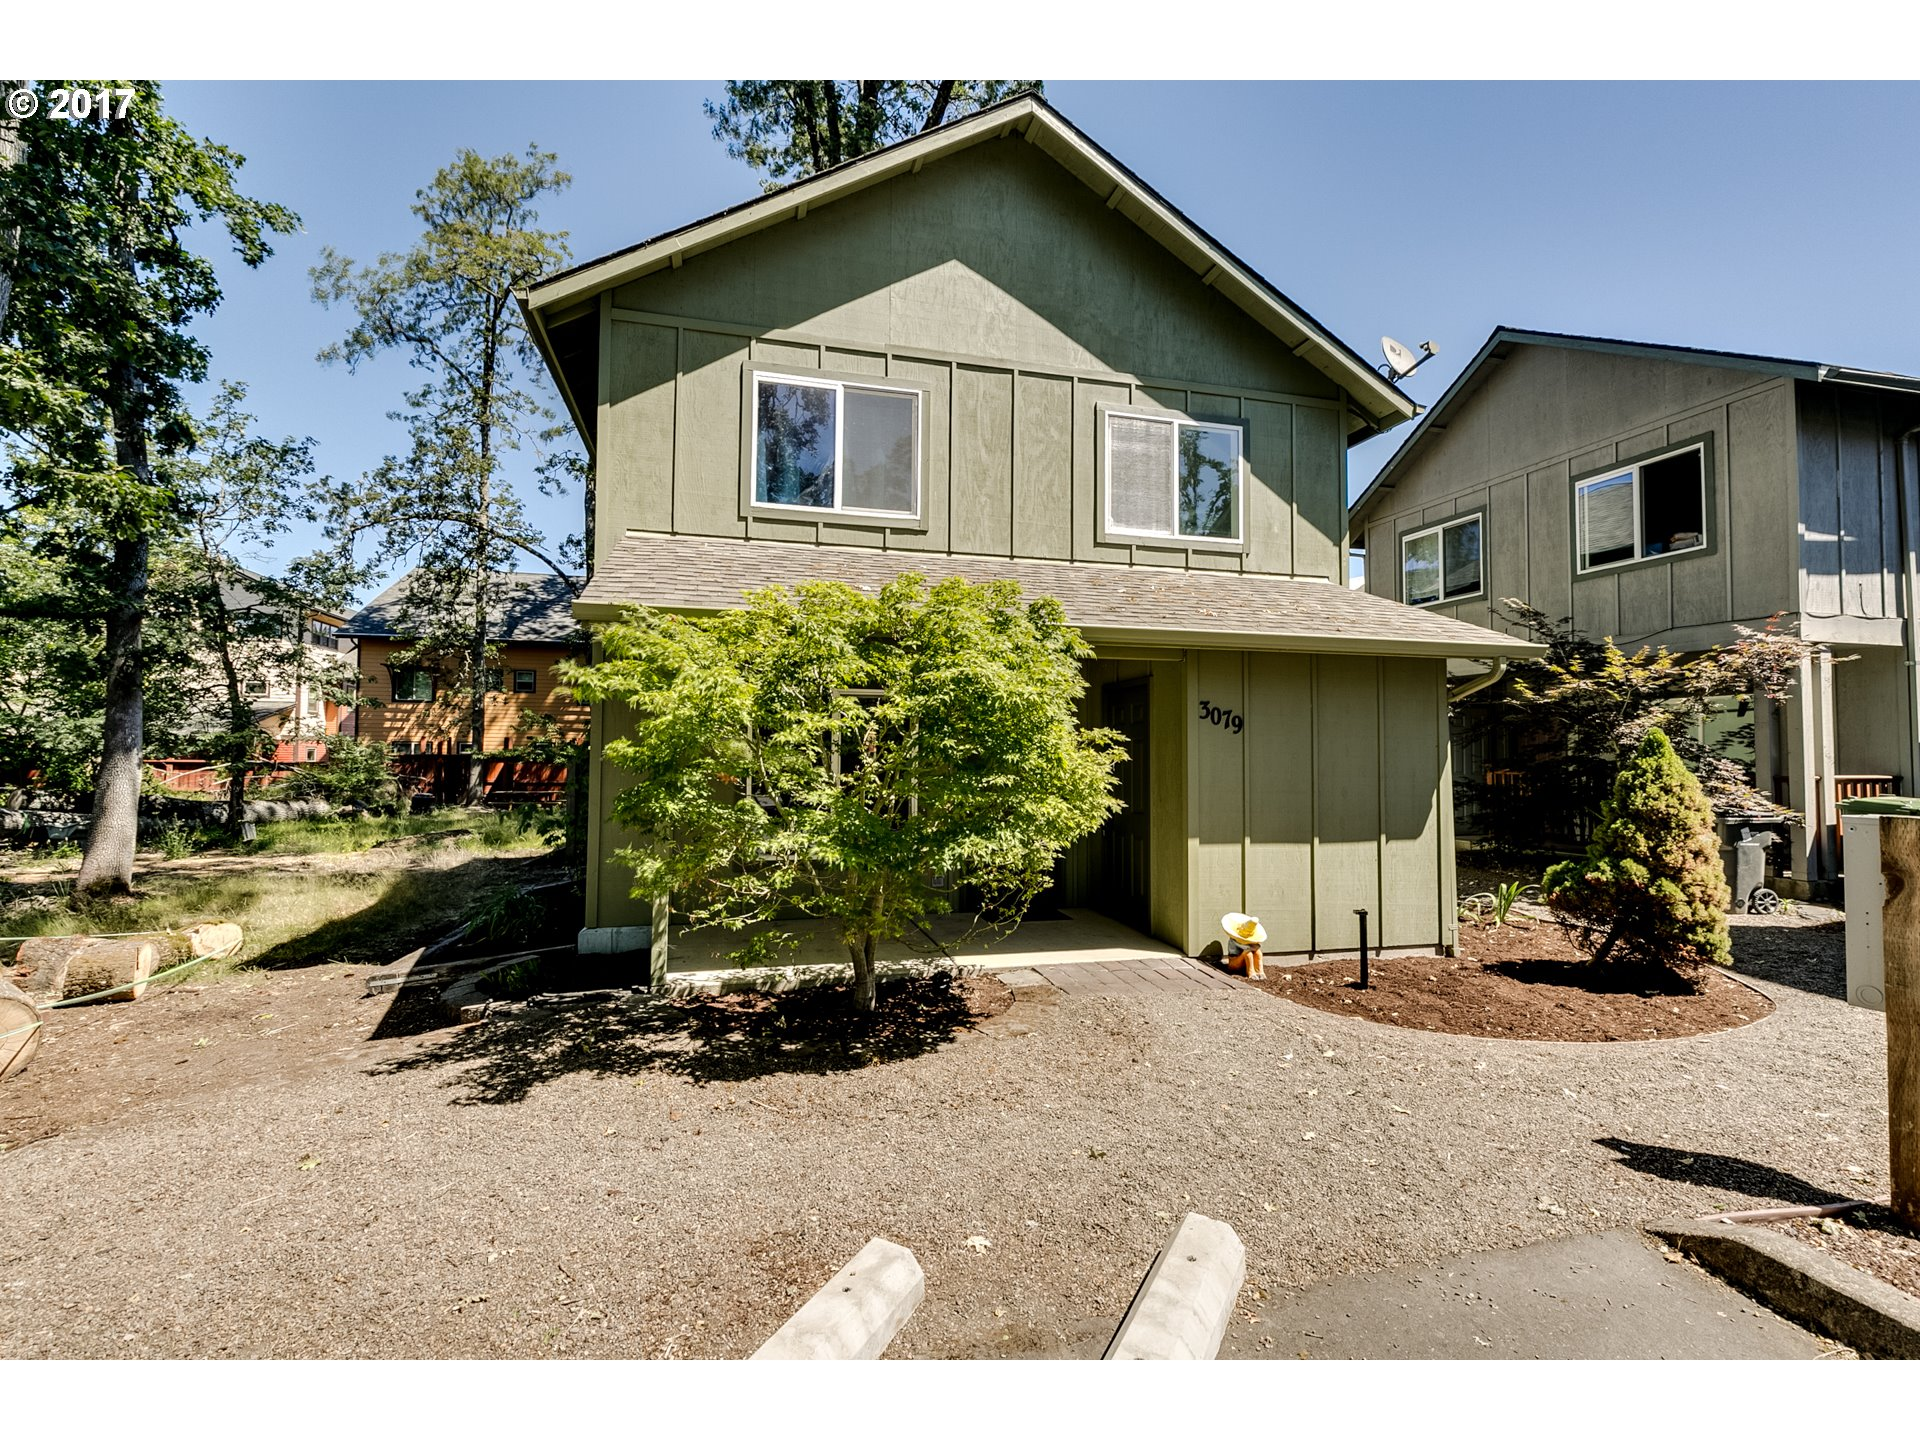 3079 W 15TH AVE, Eugene, OR 97402